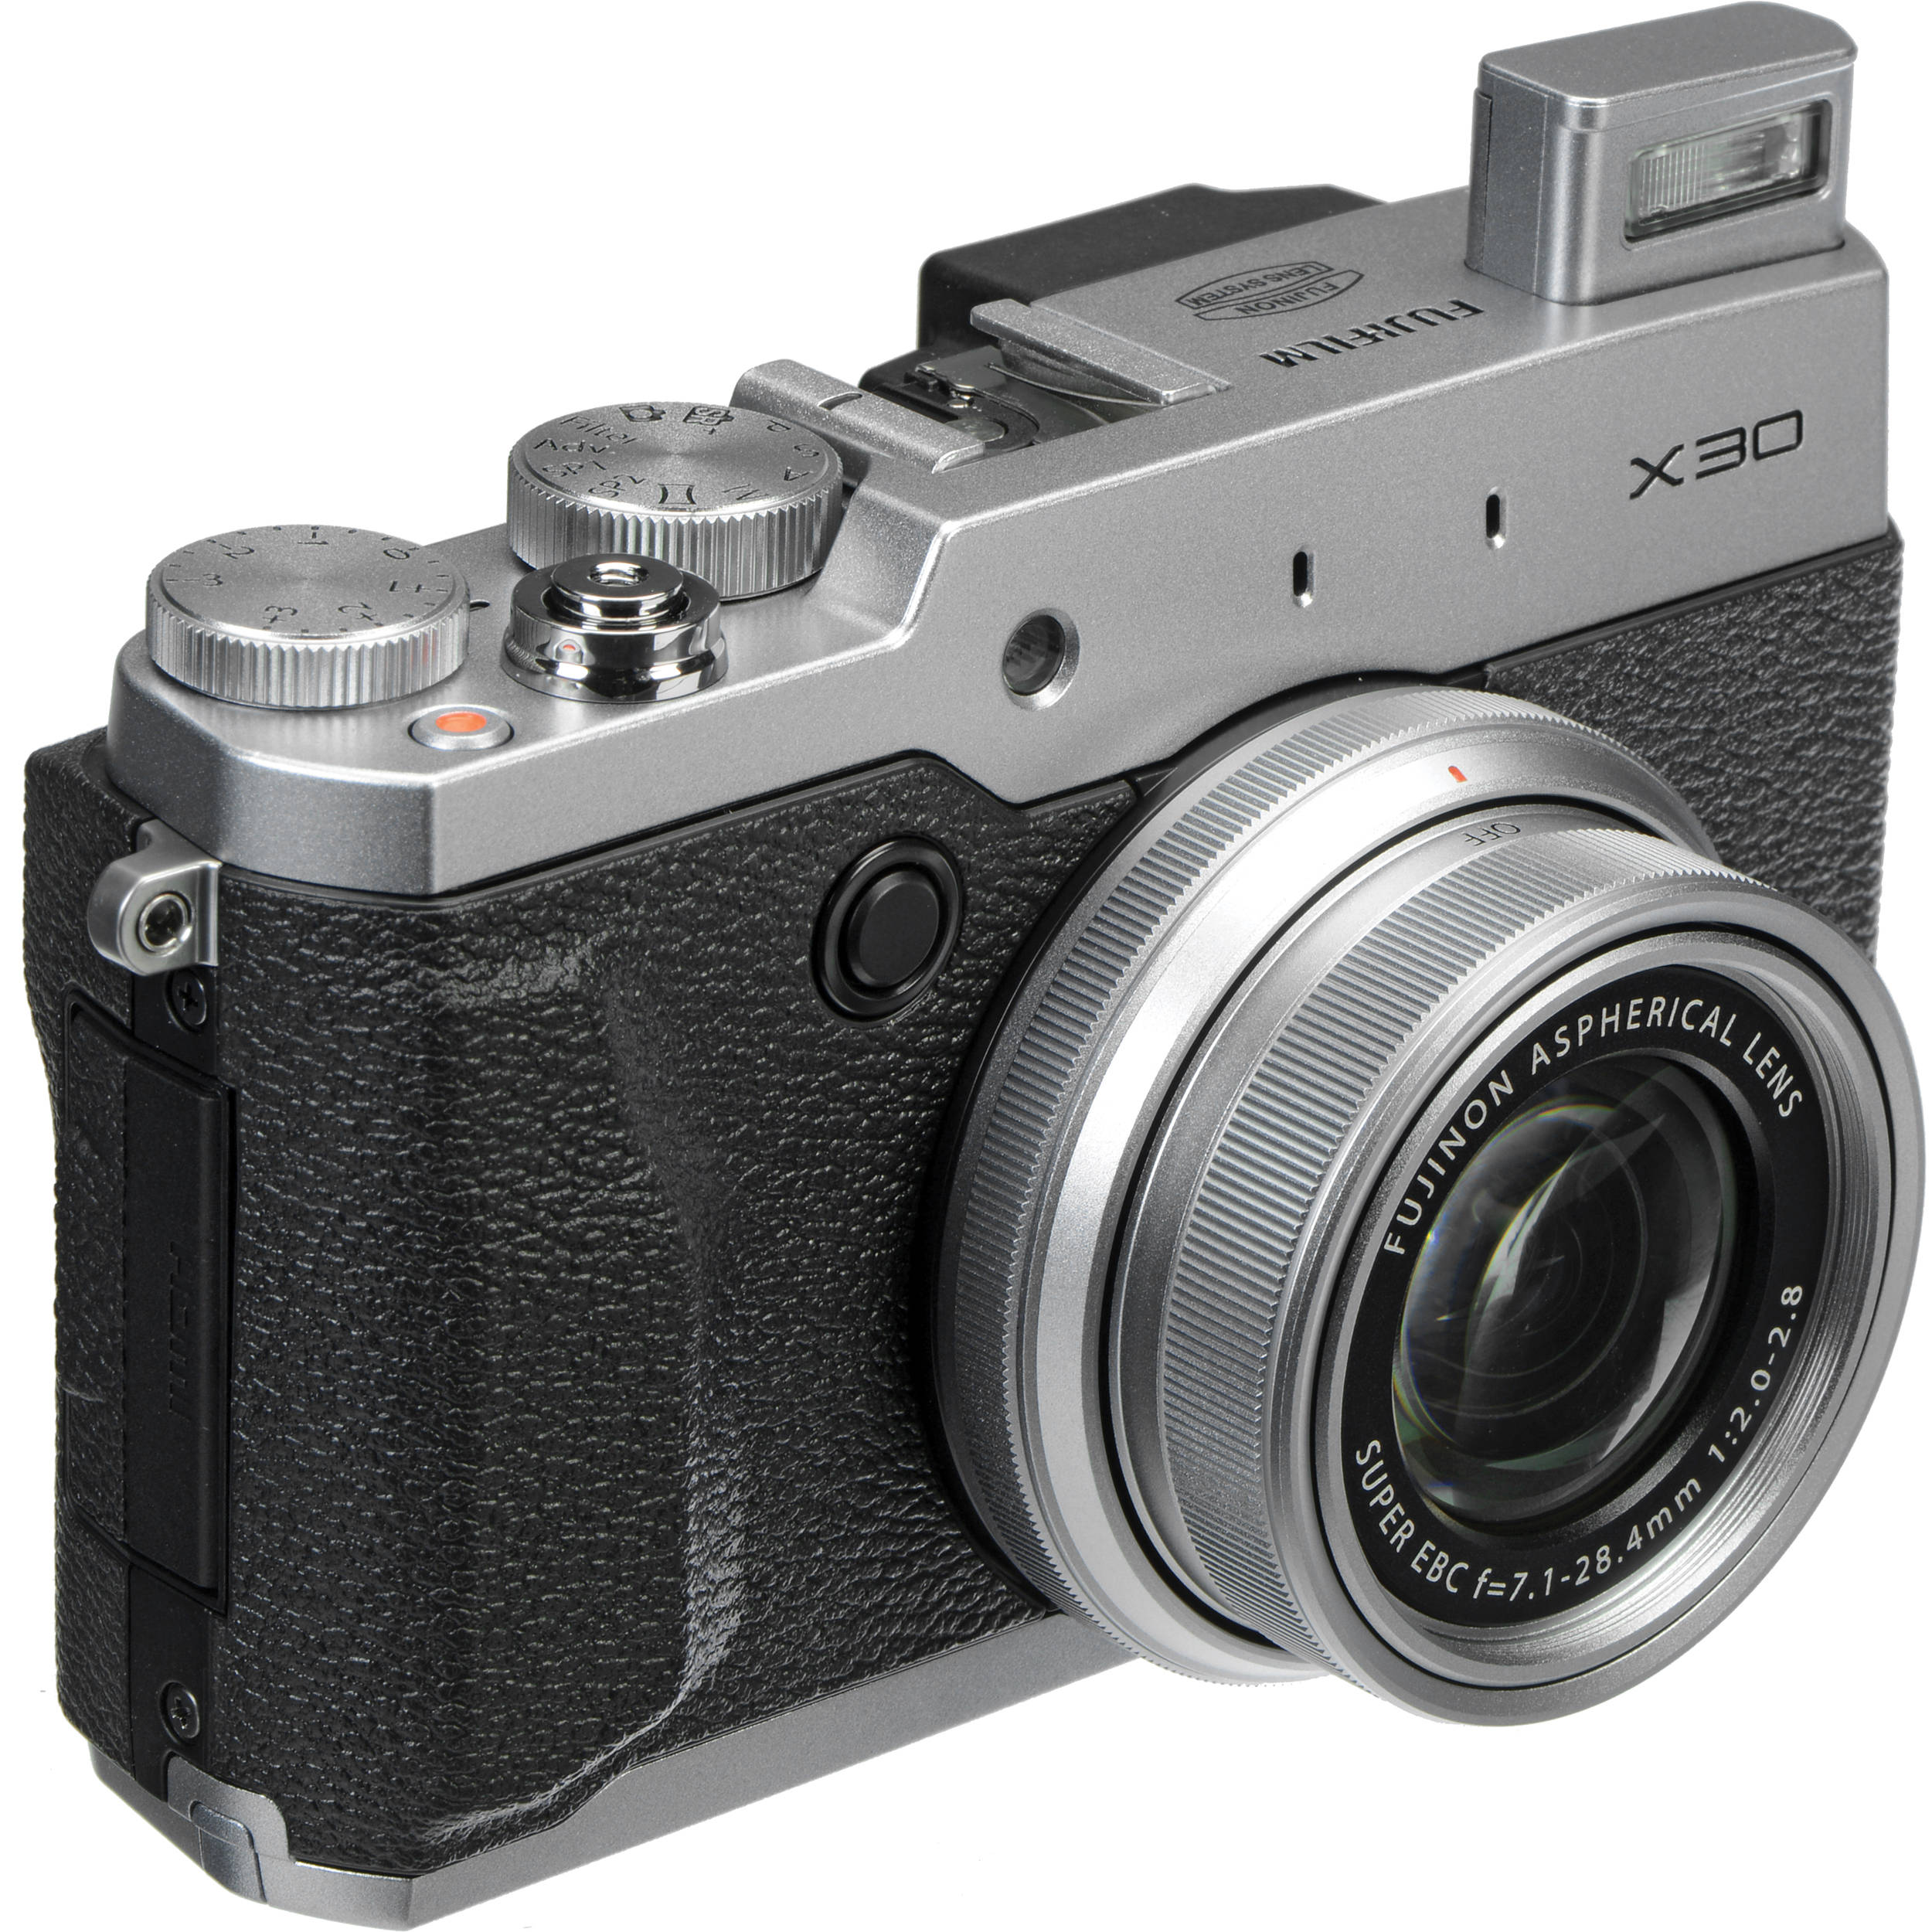 Fujifilm X30 Camera Download Drivers